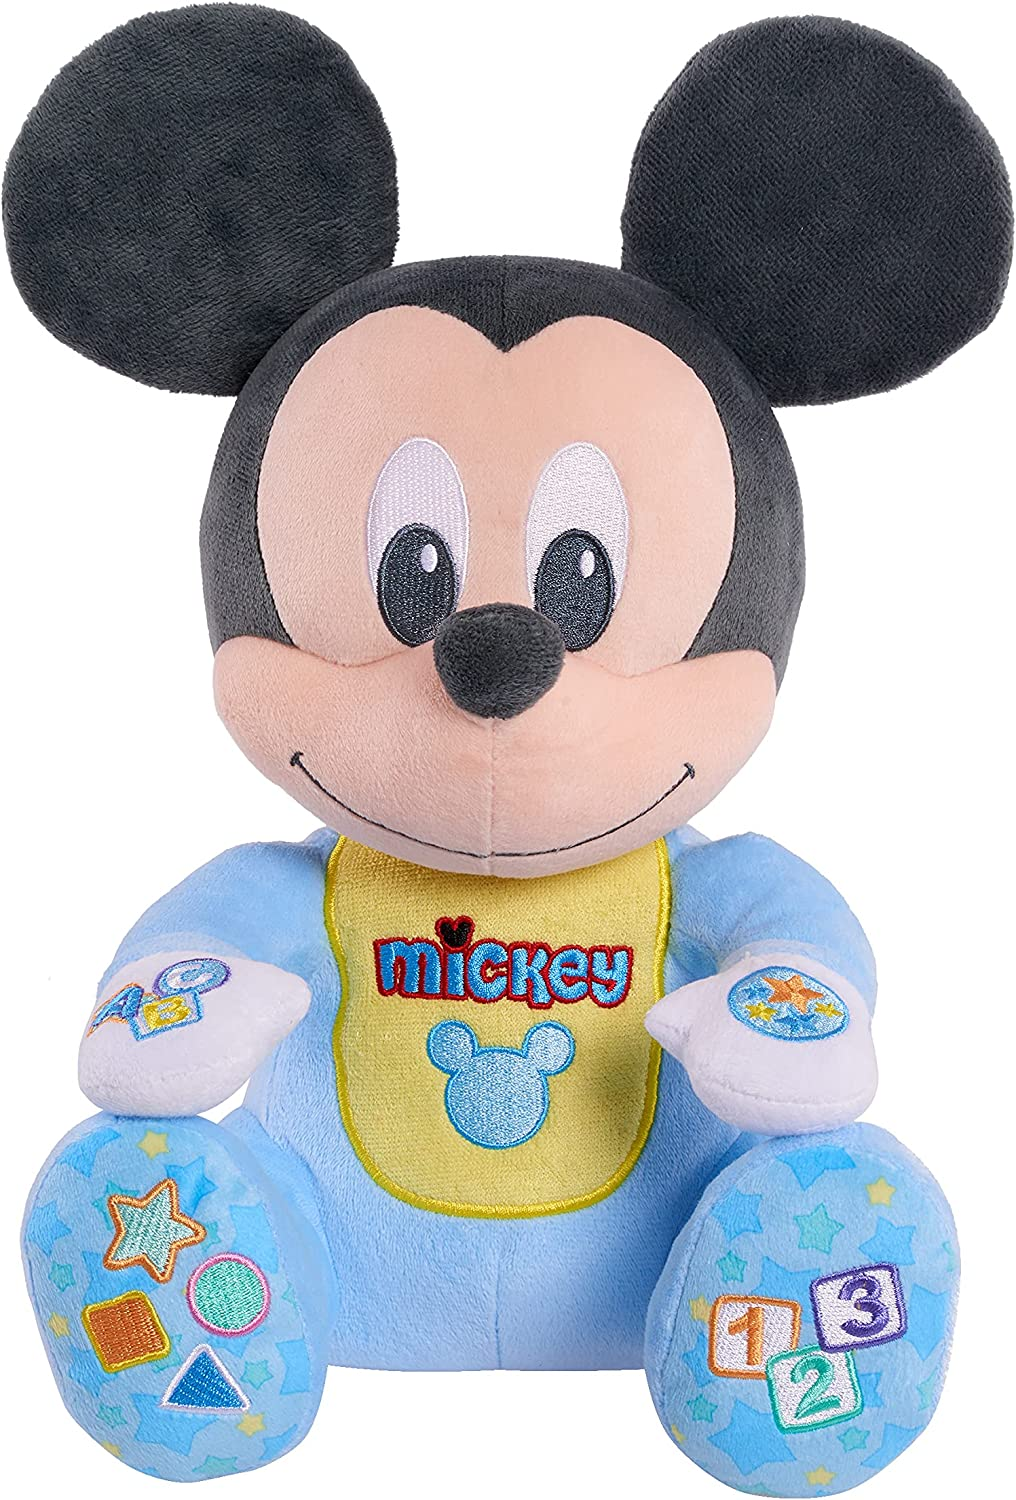 Disney security Baby 2021 autumn and winter new Musical Discovery Plush Play by Just Mouse Mickey